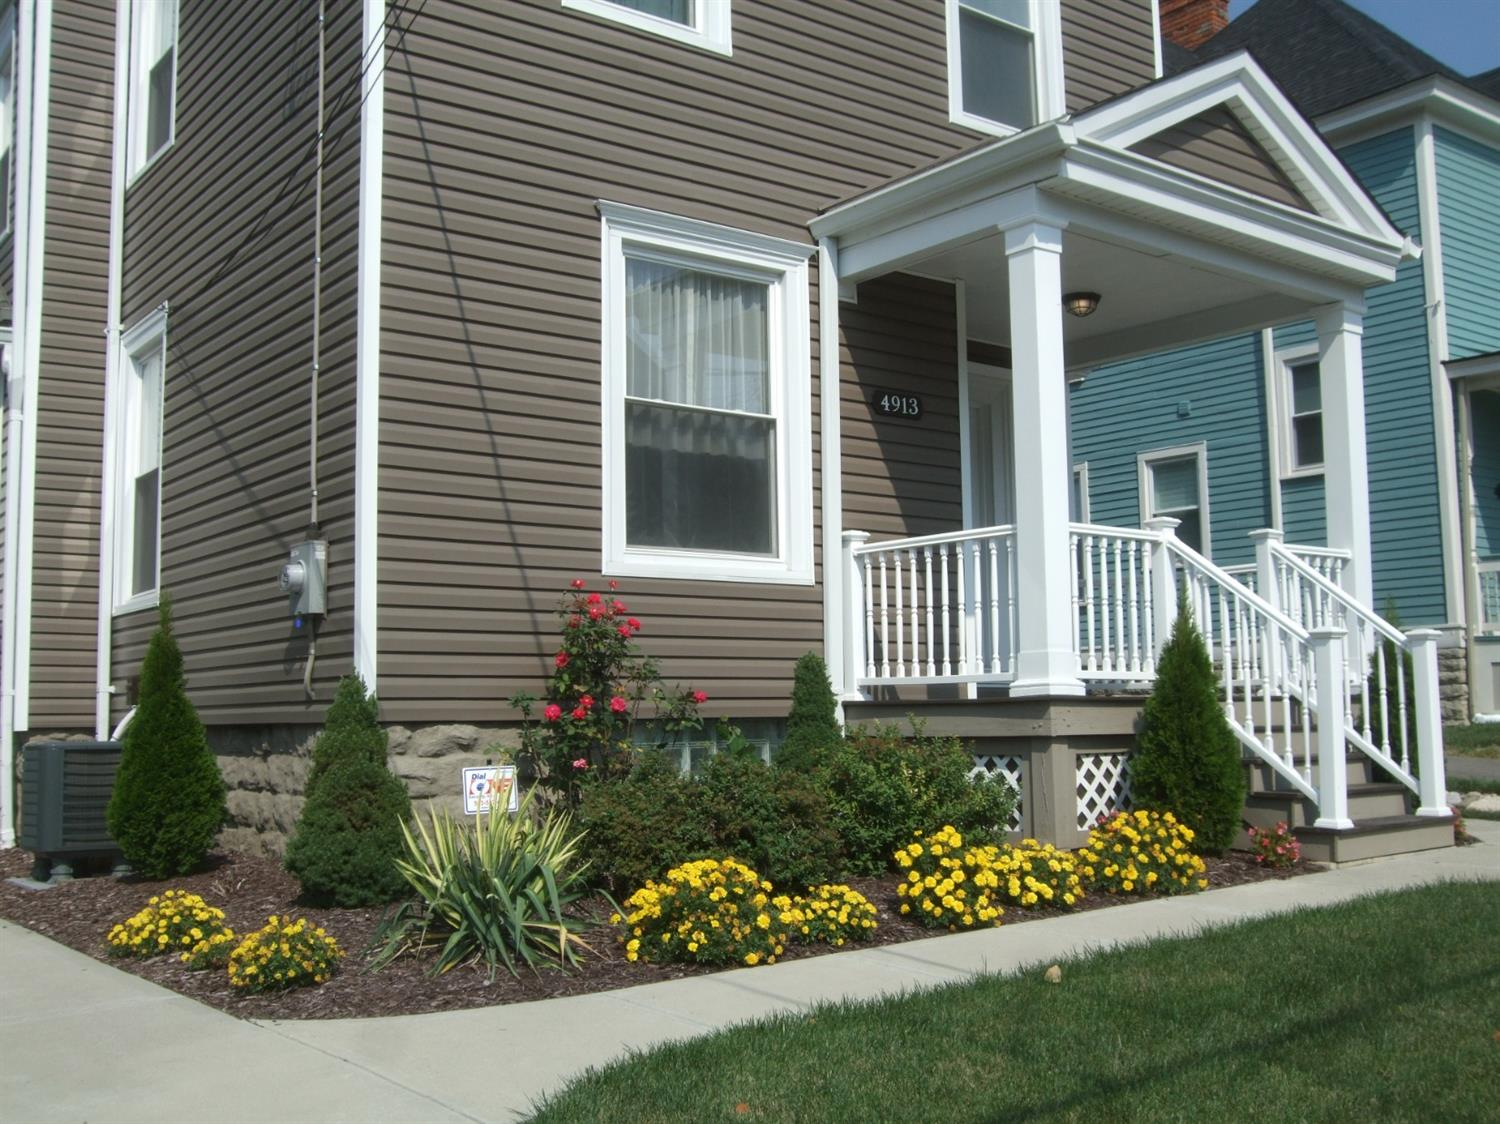 Photo 3 for 4913 Wesley Avenue Norwood, OH 45212